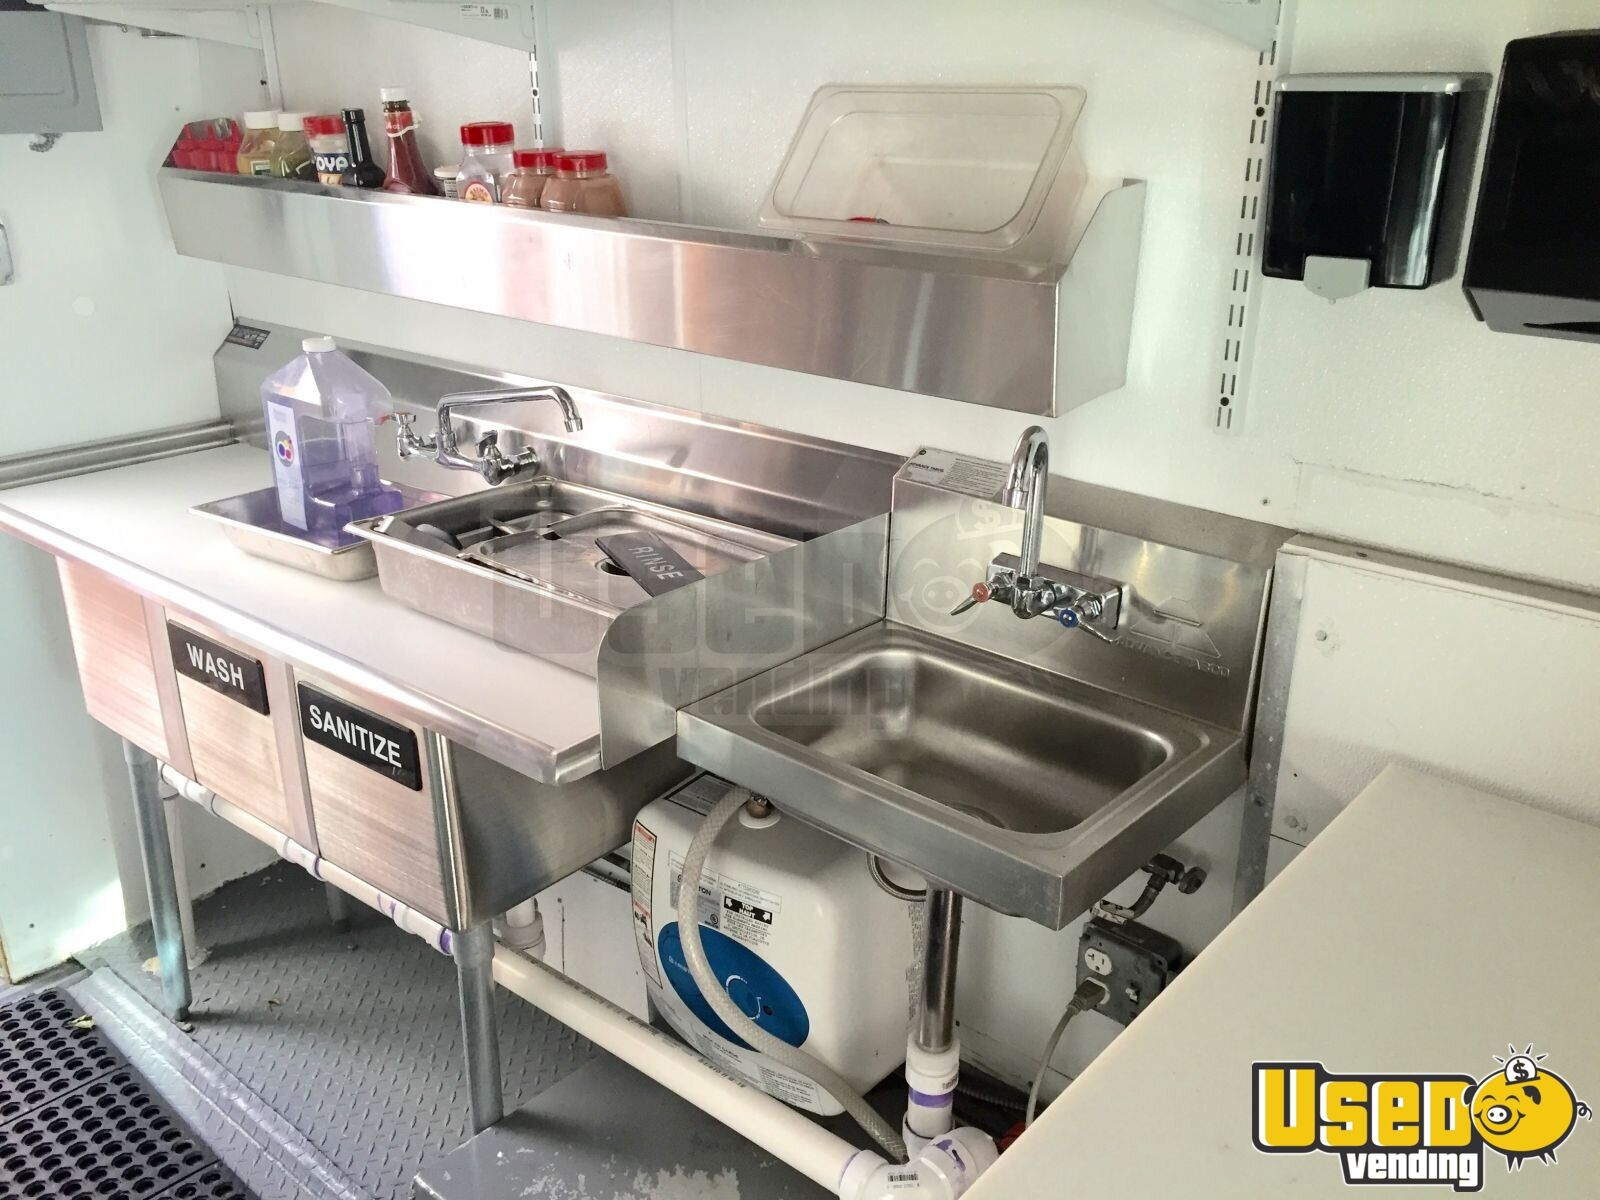 Chevy Workhorse Food Truck Mobile Kitchen for Sale in Massachusetts - 14